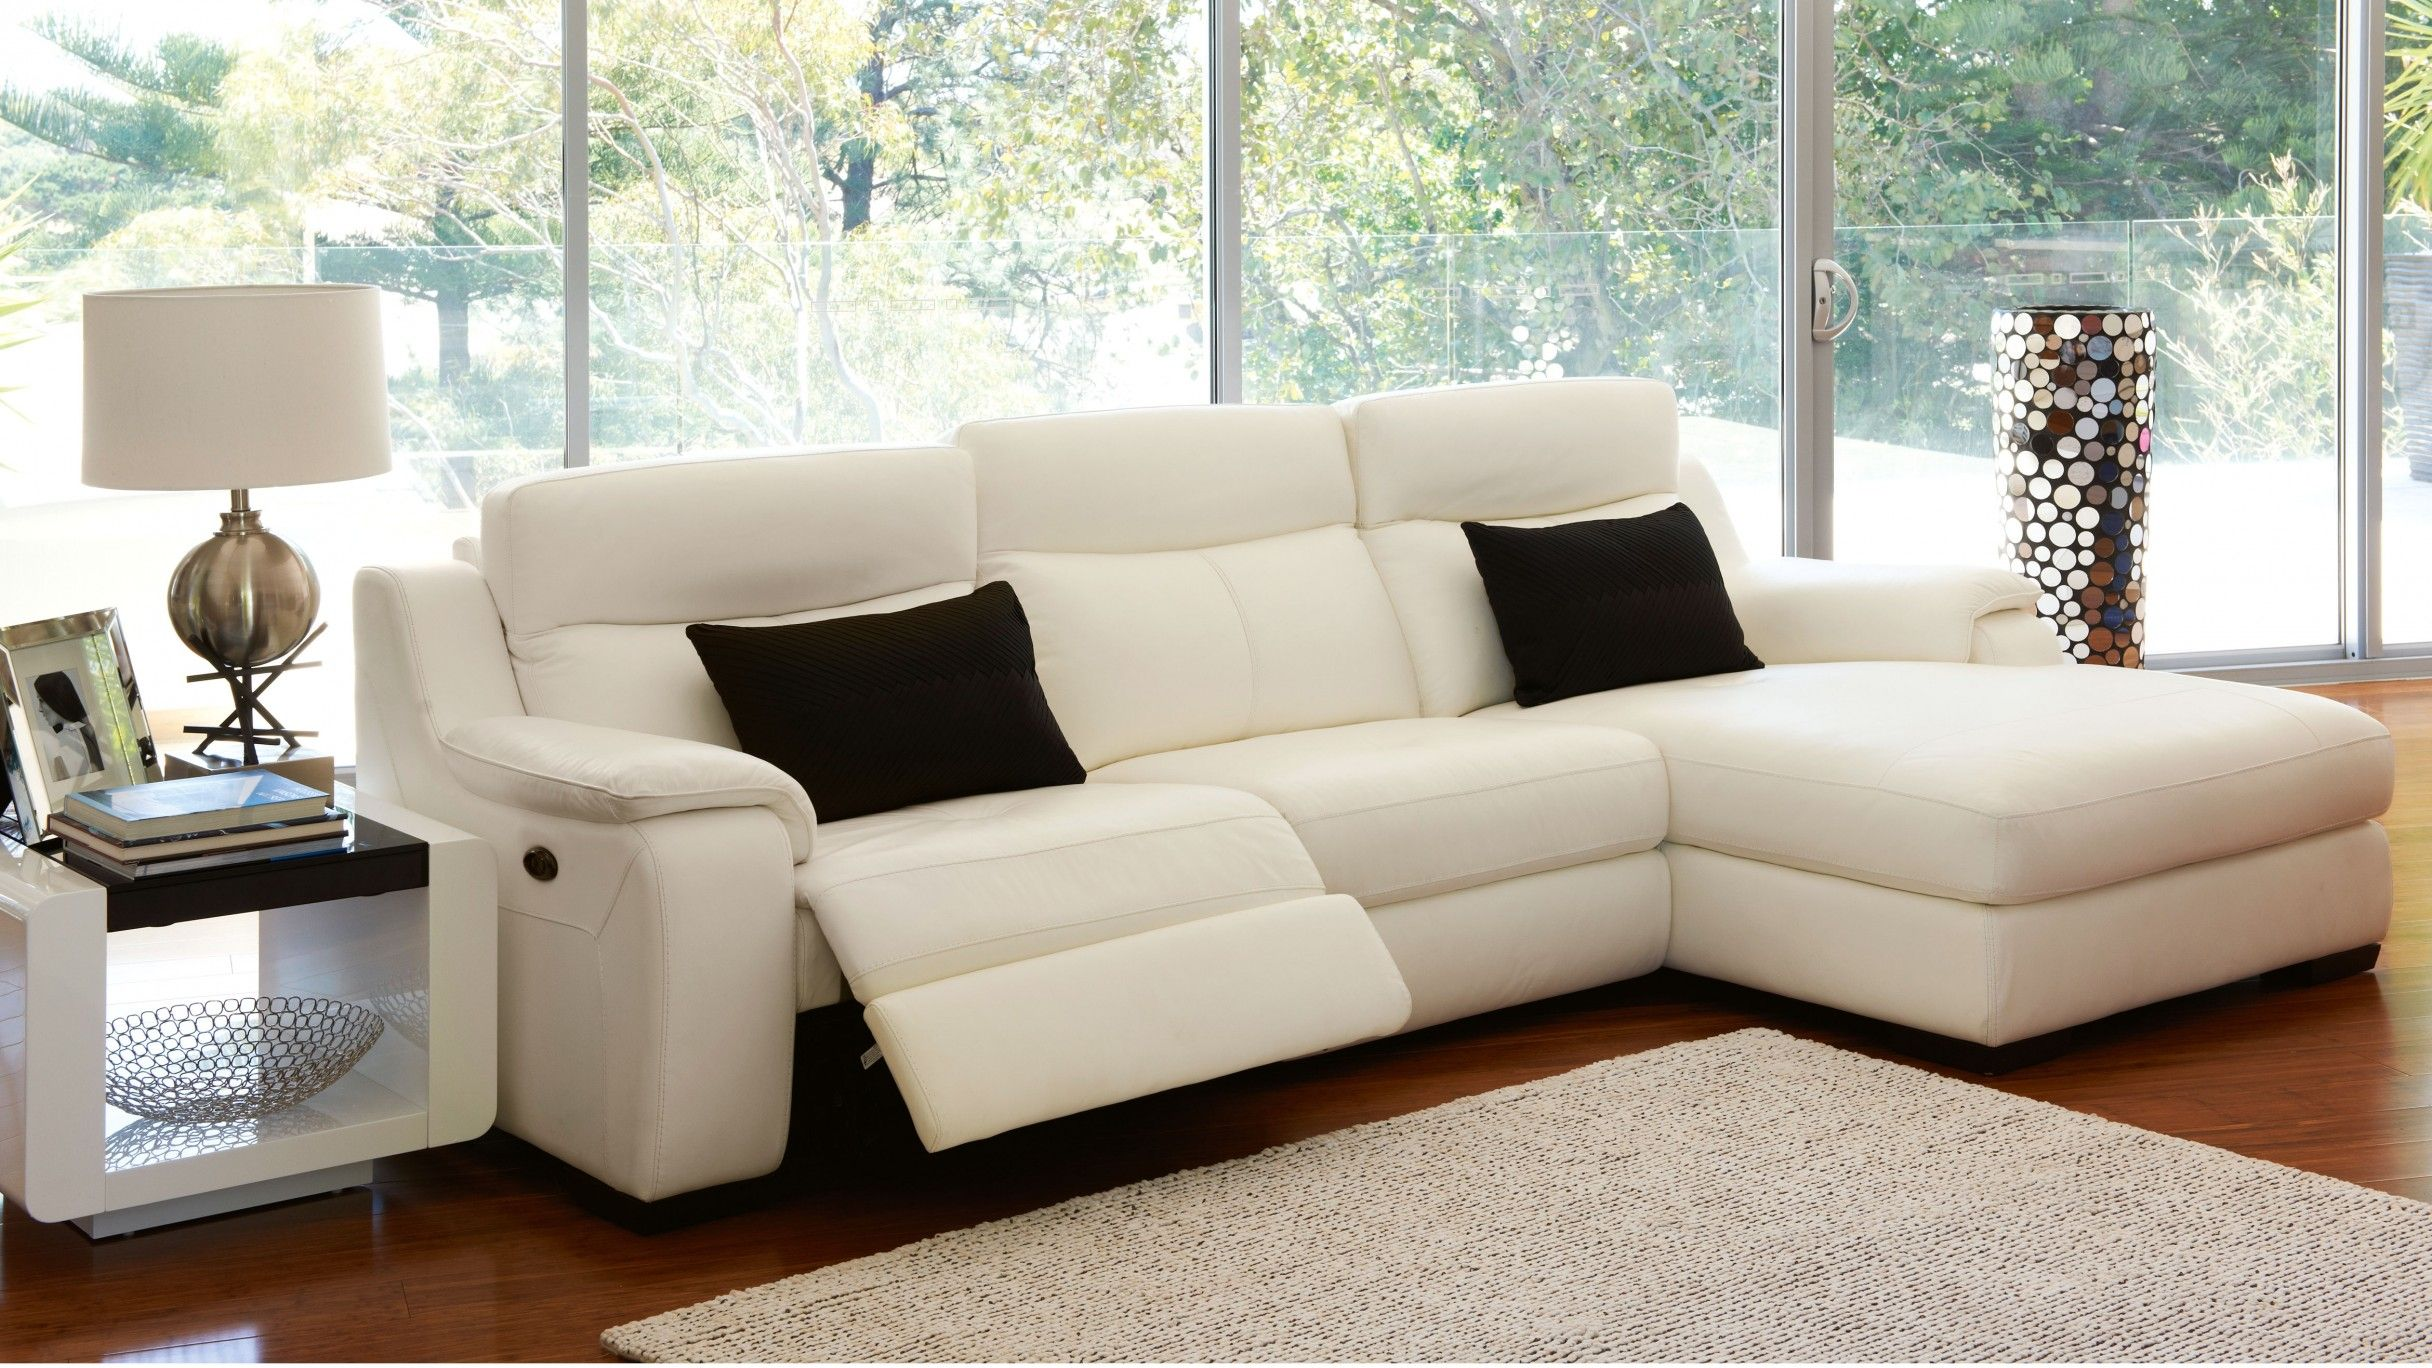 Longmont 2 Seater Plus Chaise Lounges Recliners Harvey